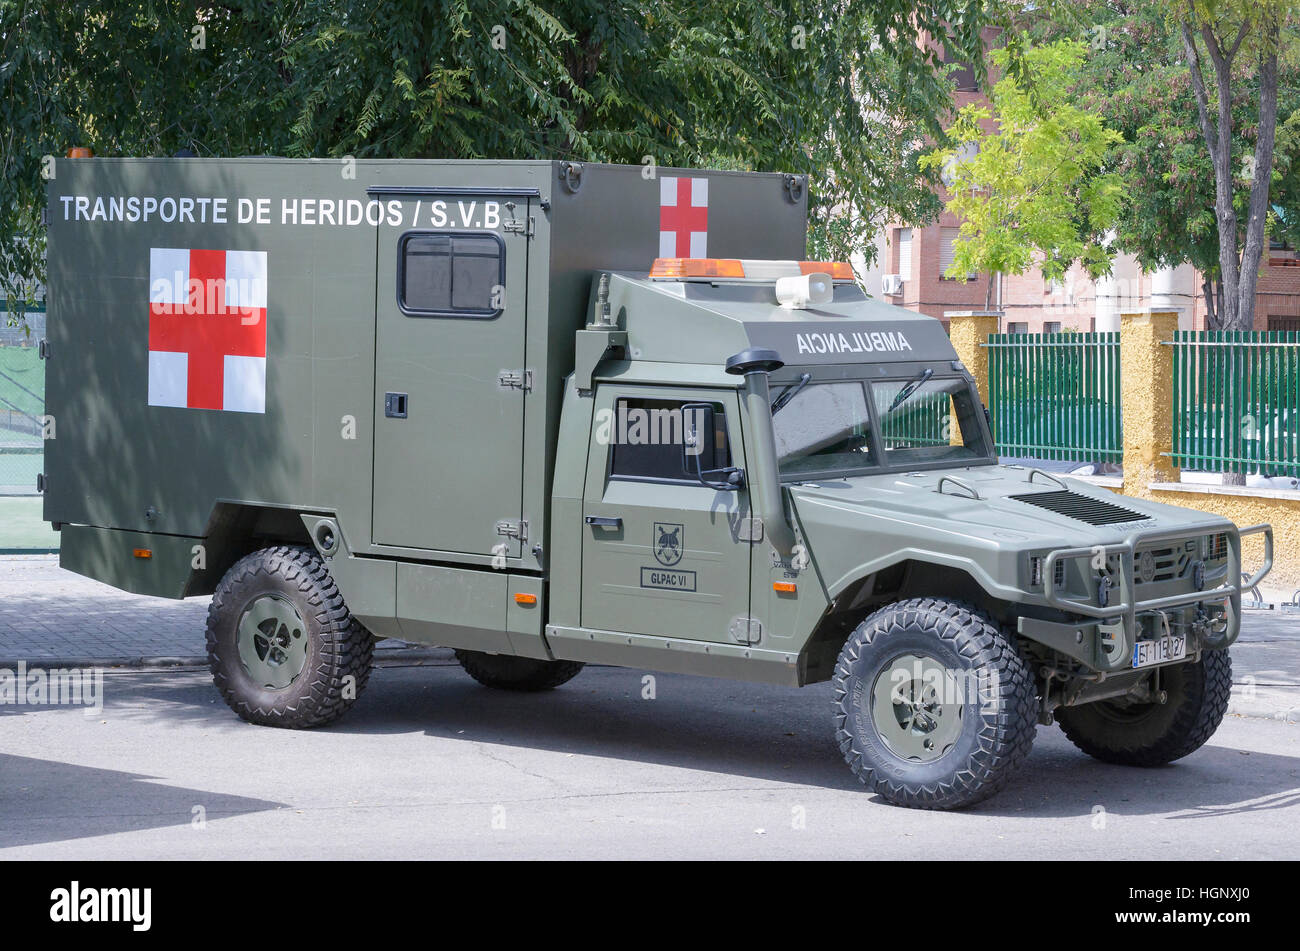 Vehicles of spanish army. URO VAMTAC S3. Military ambulance. Red Cross. - Stock Image